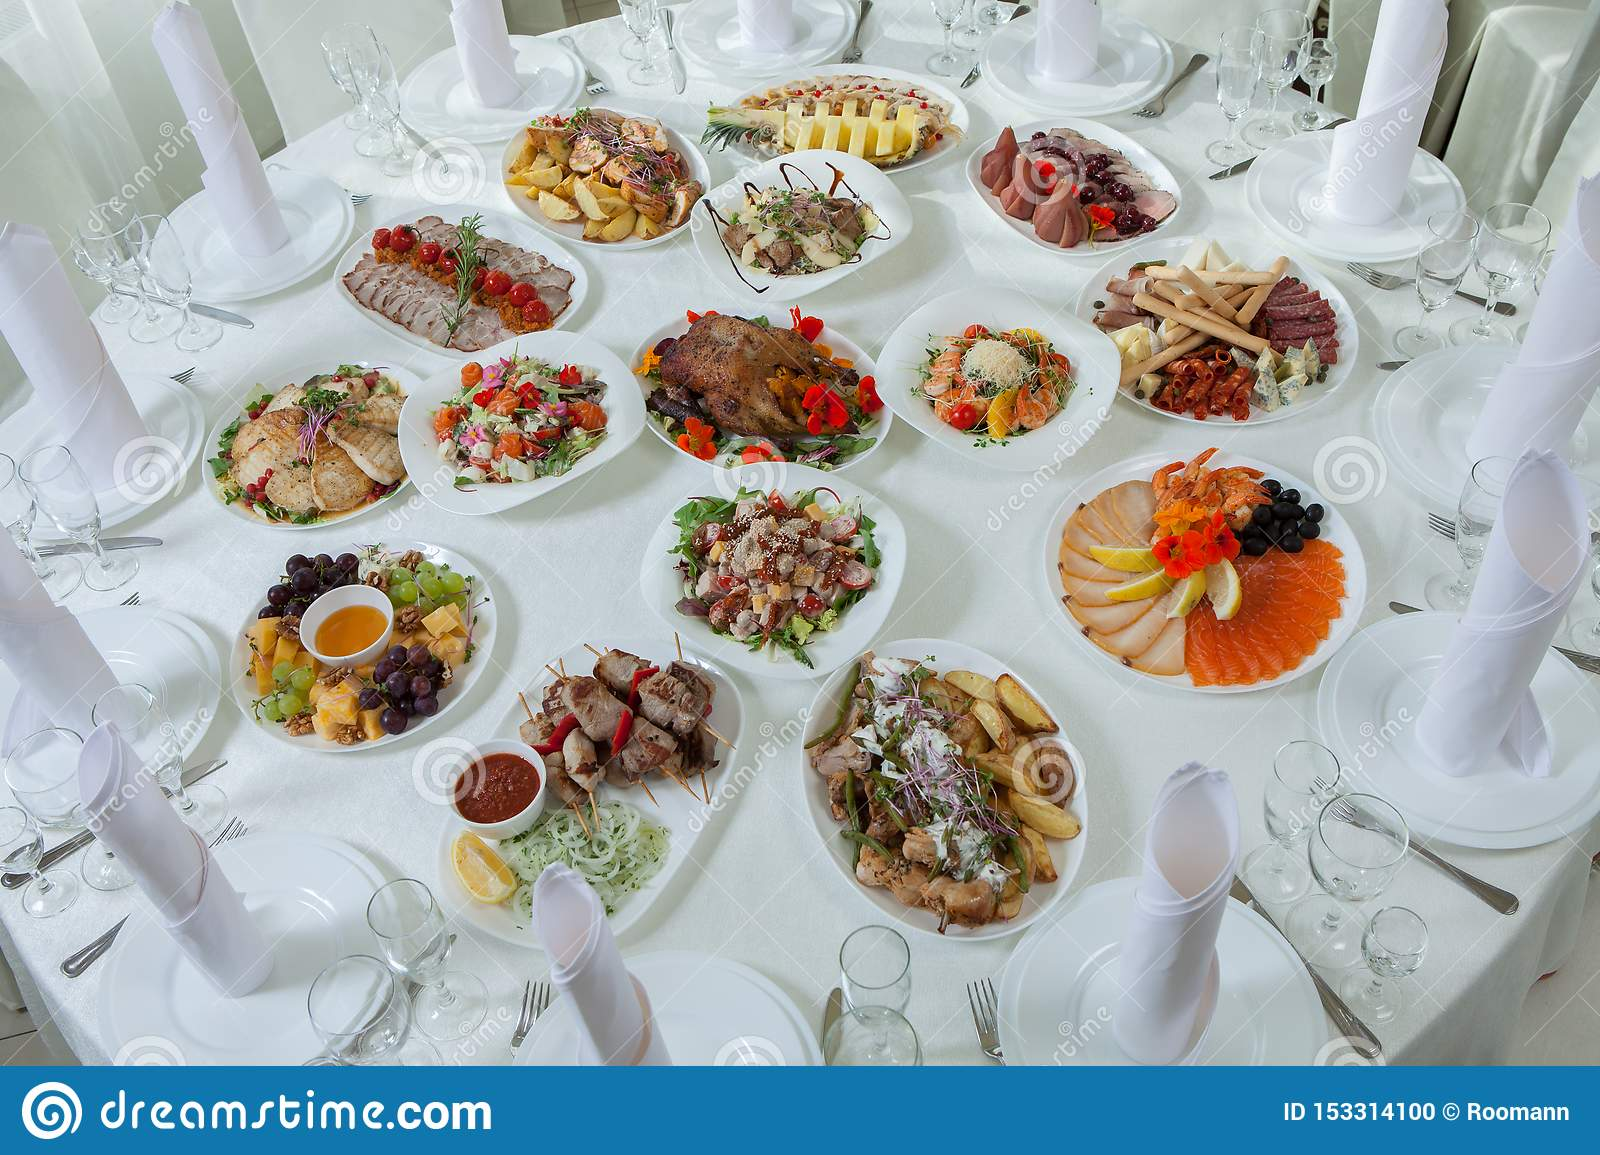 Beautiful Festive Table Served For Wedding Celebration Dinner At Home Or Restaurant Interior Full Of Food A Stock Photo Image Buffet 153314100